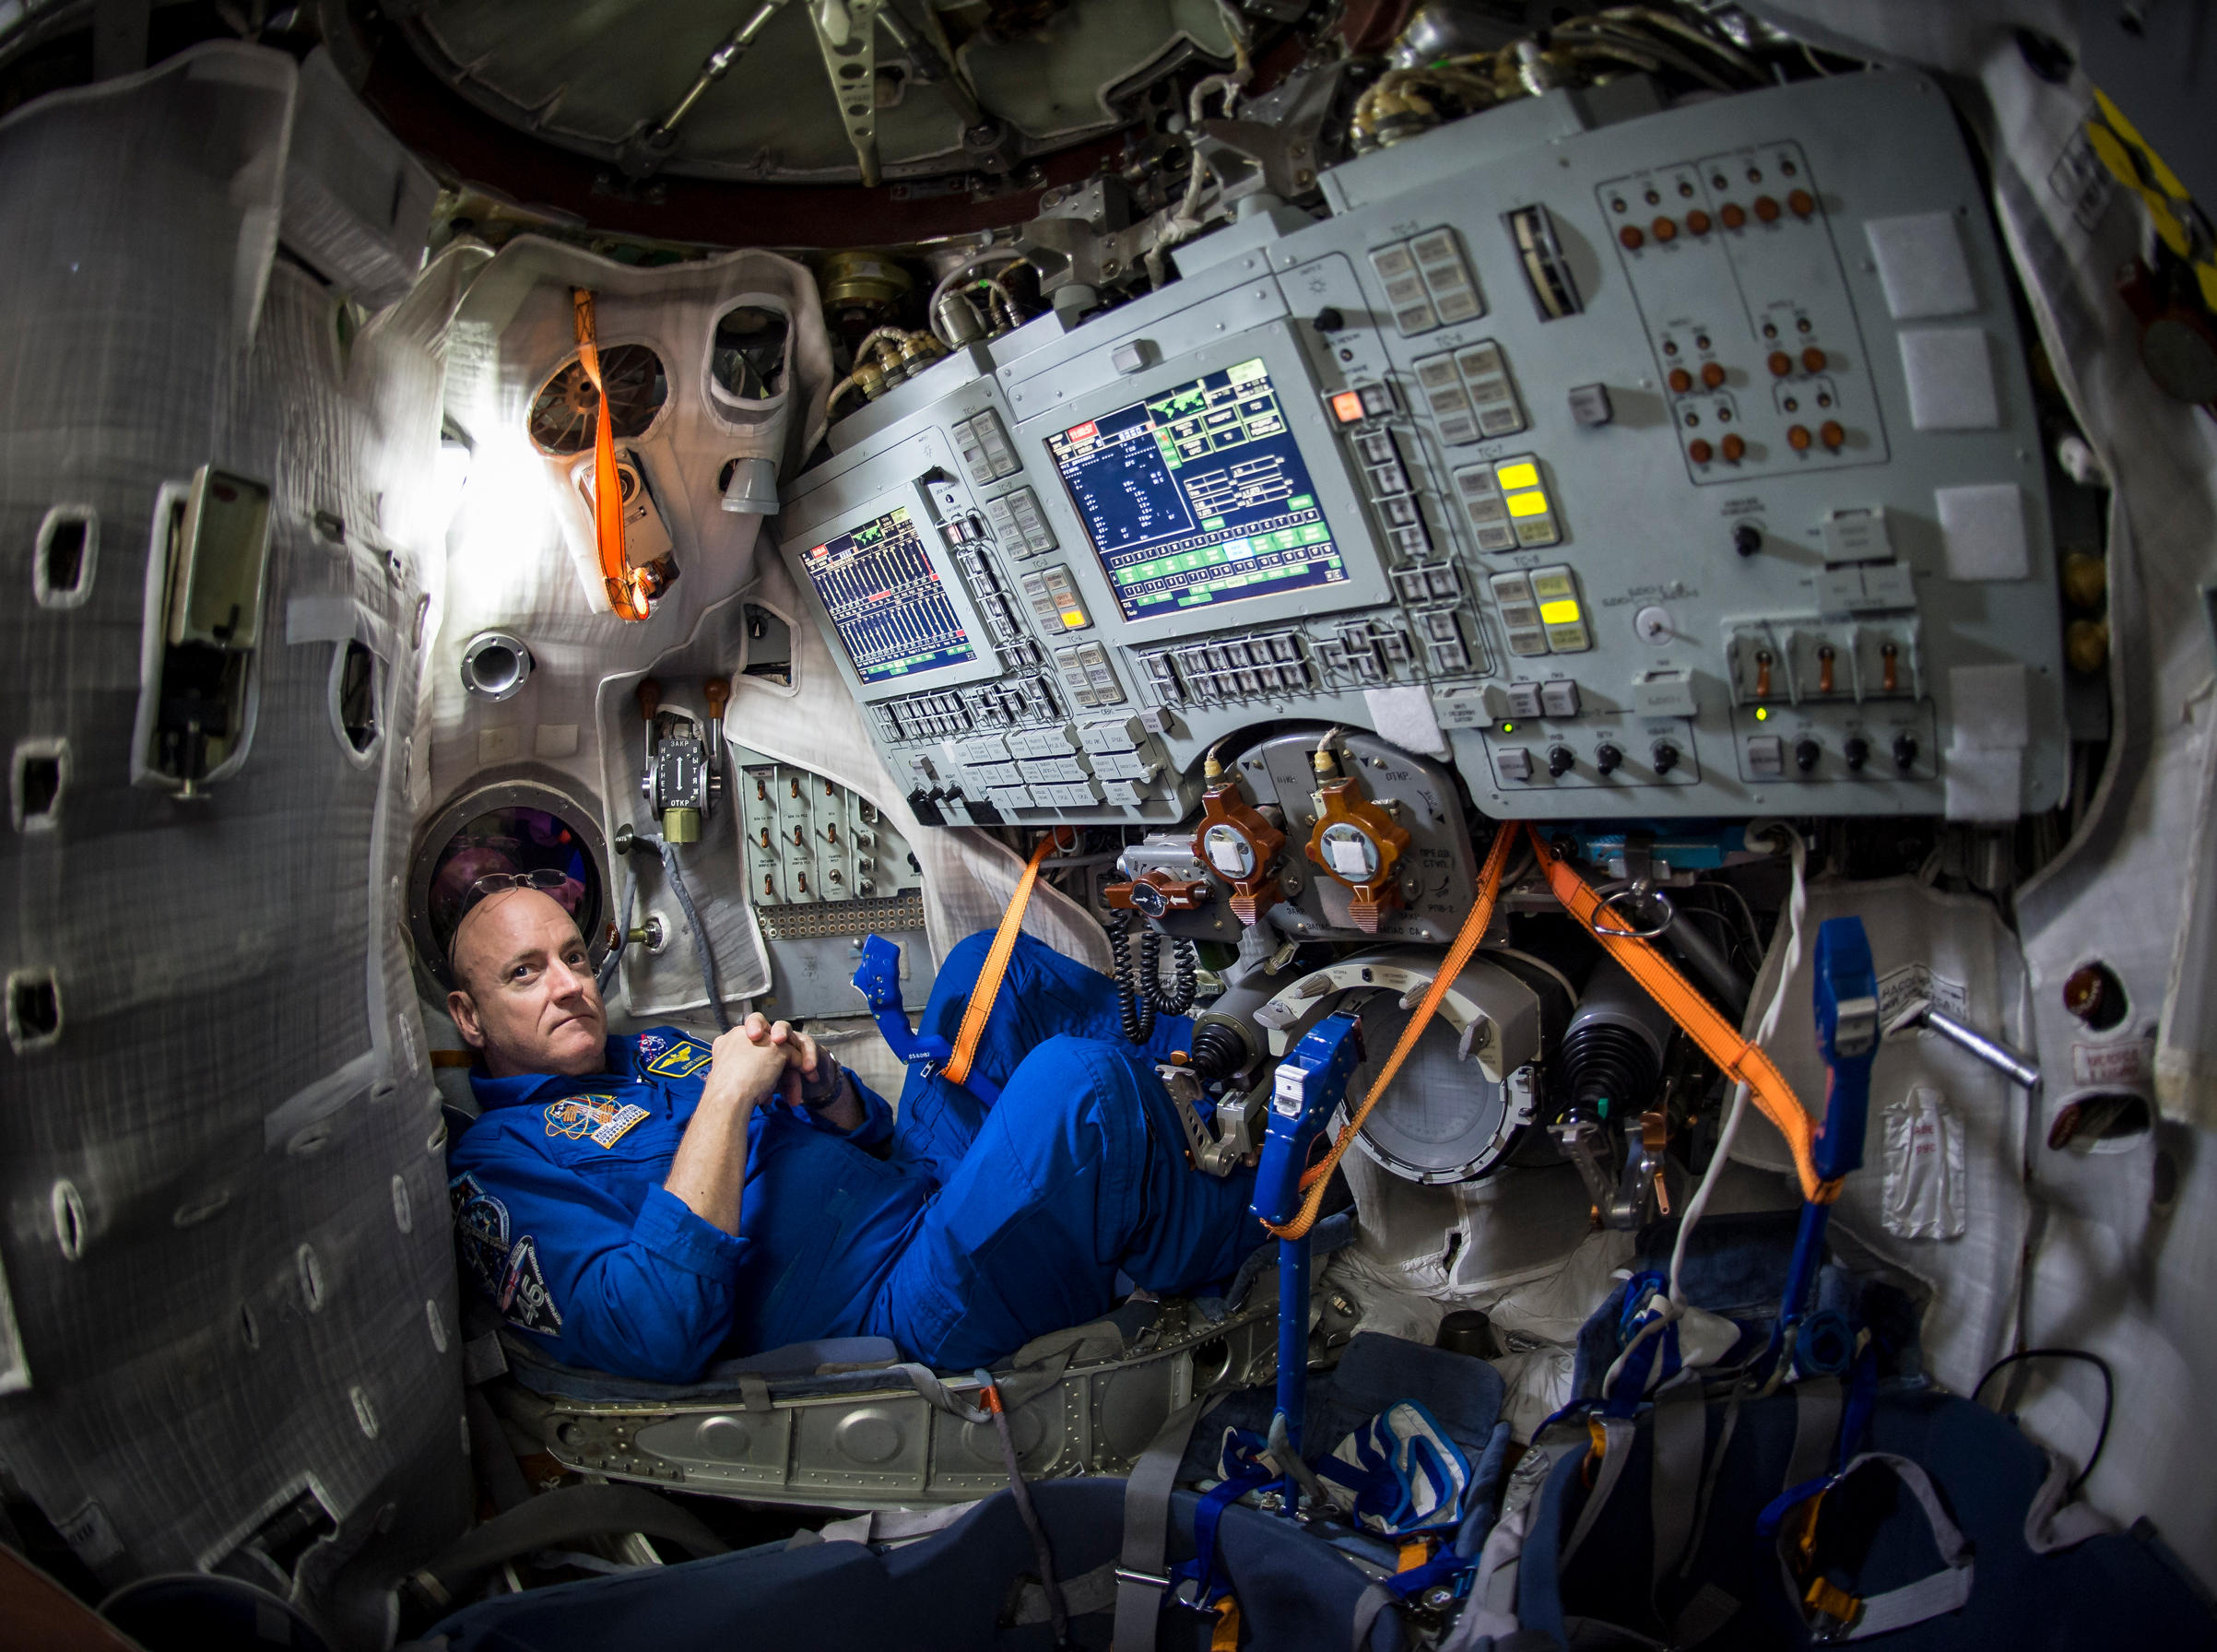 Scott Kelly is seen inside a Soyuz simulator at the Gagarin Cosmonaut Training Center March 5, 2015 in Star City, Russia.